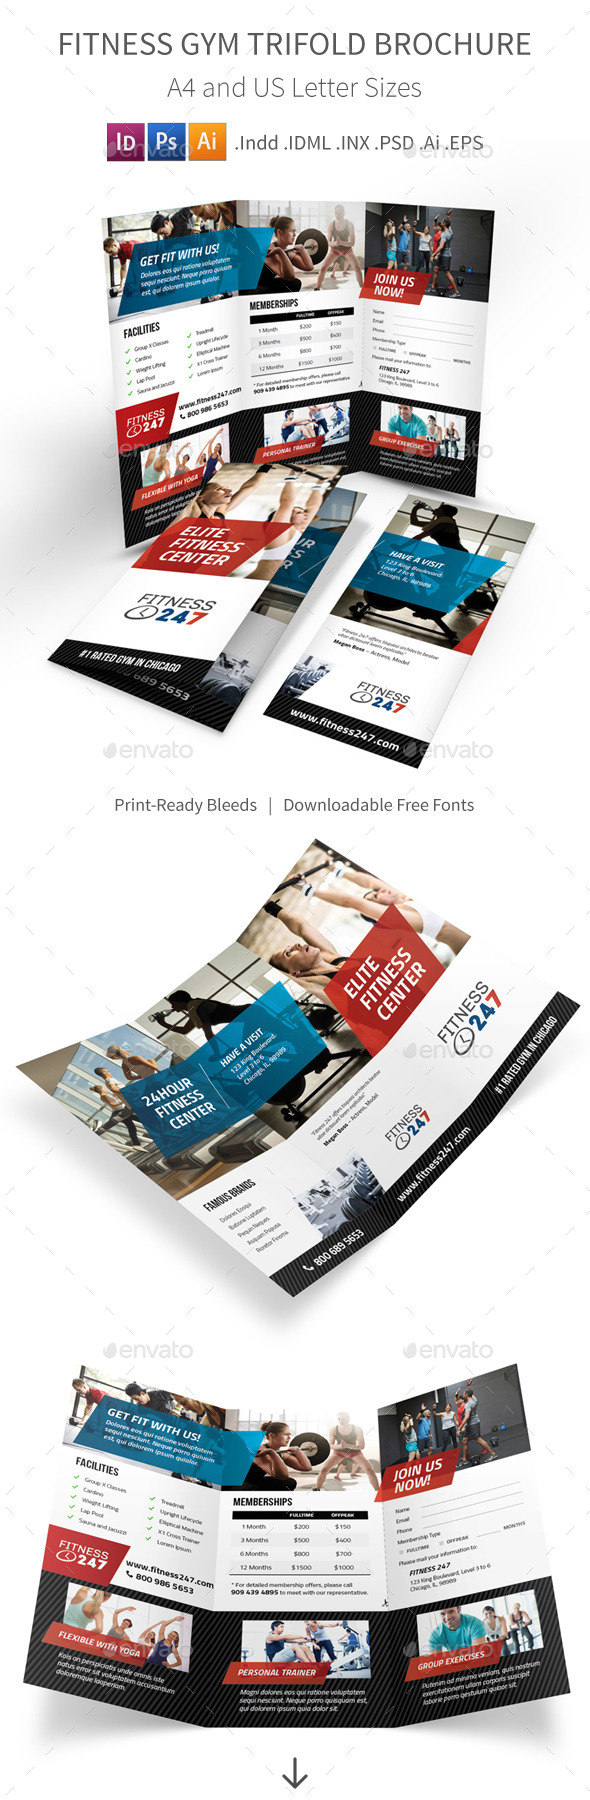 GraphicRiver Fitness Gym Trifold Brochure 10947454